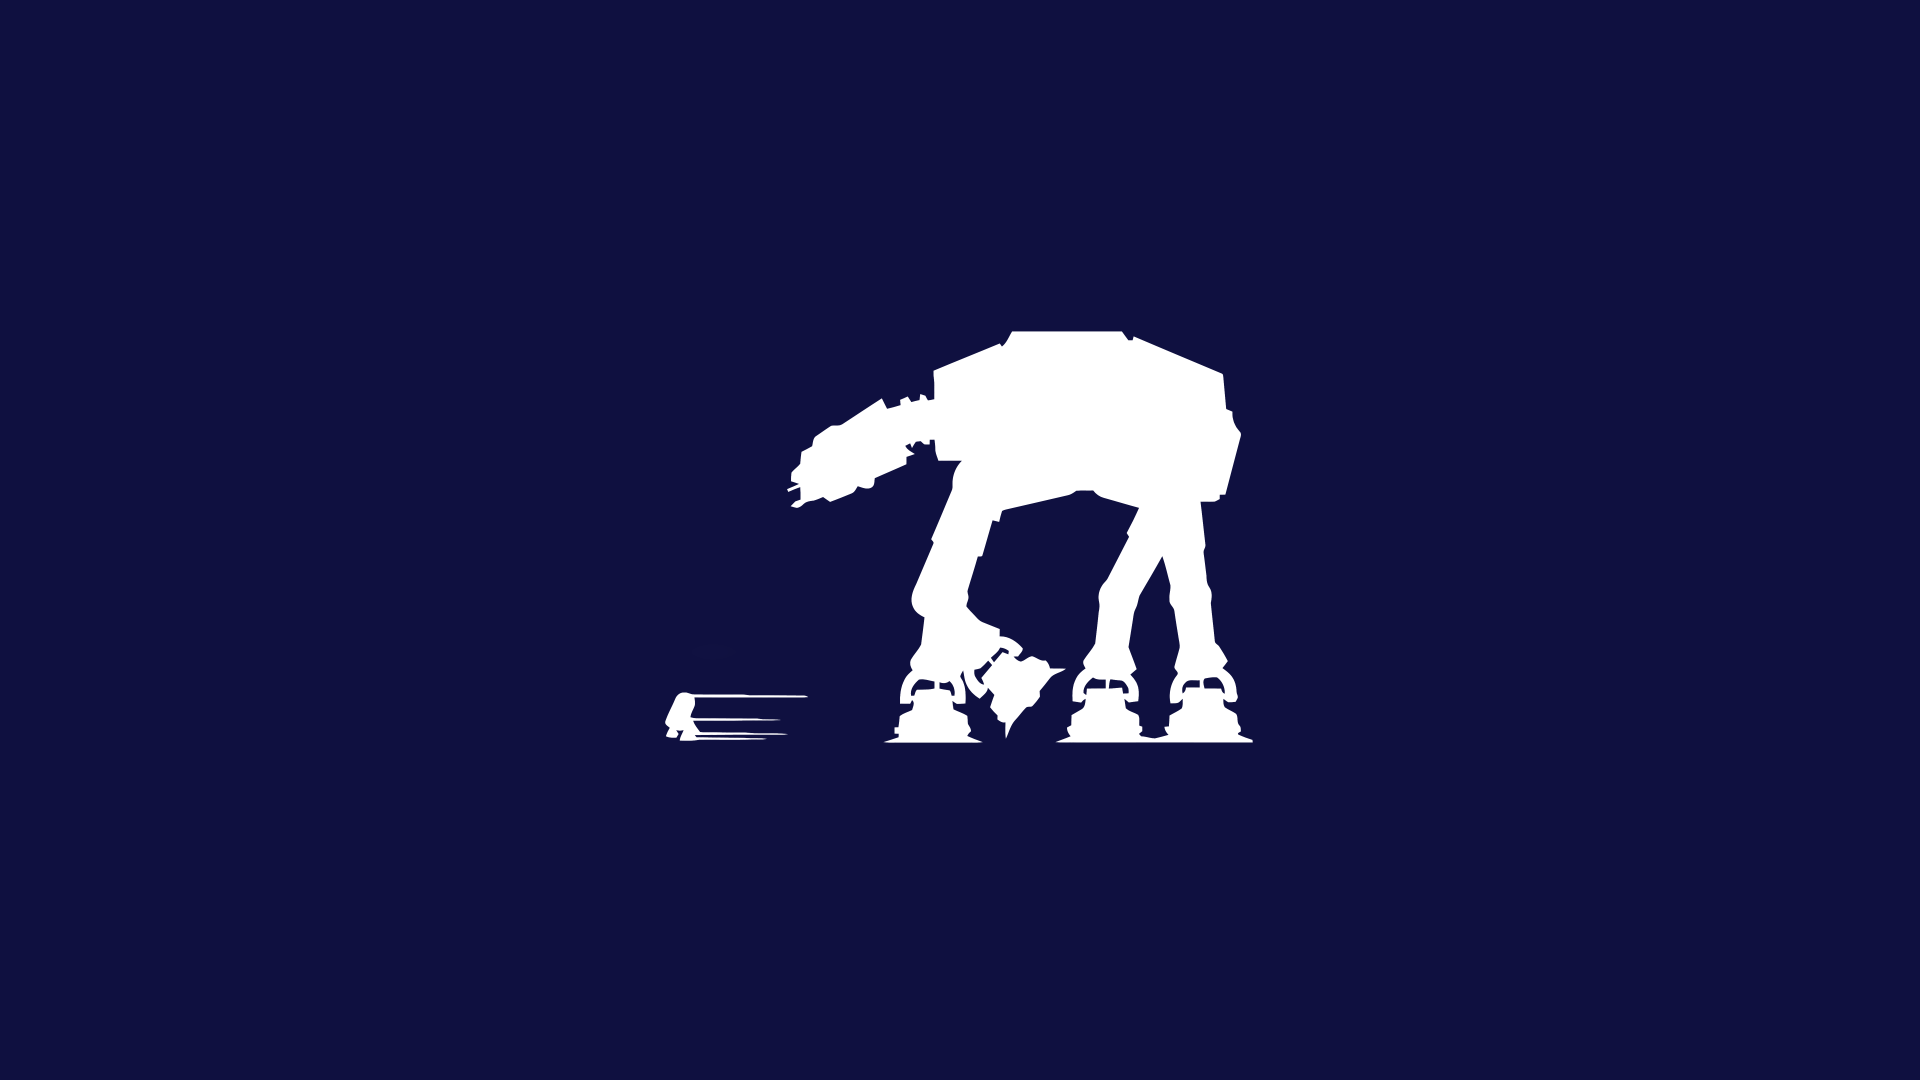 Star Wars Wallpapers clone